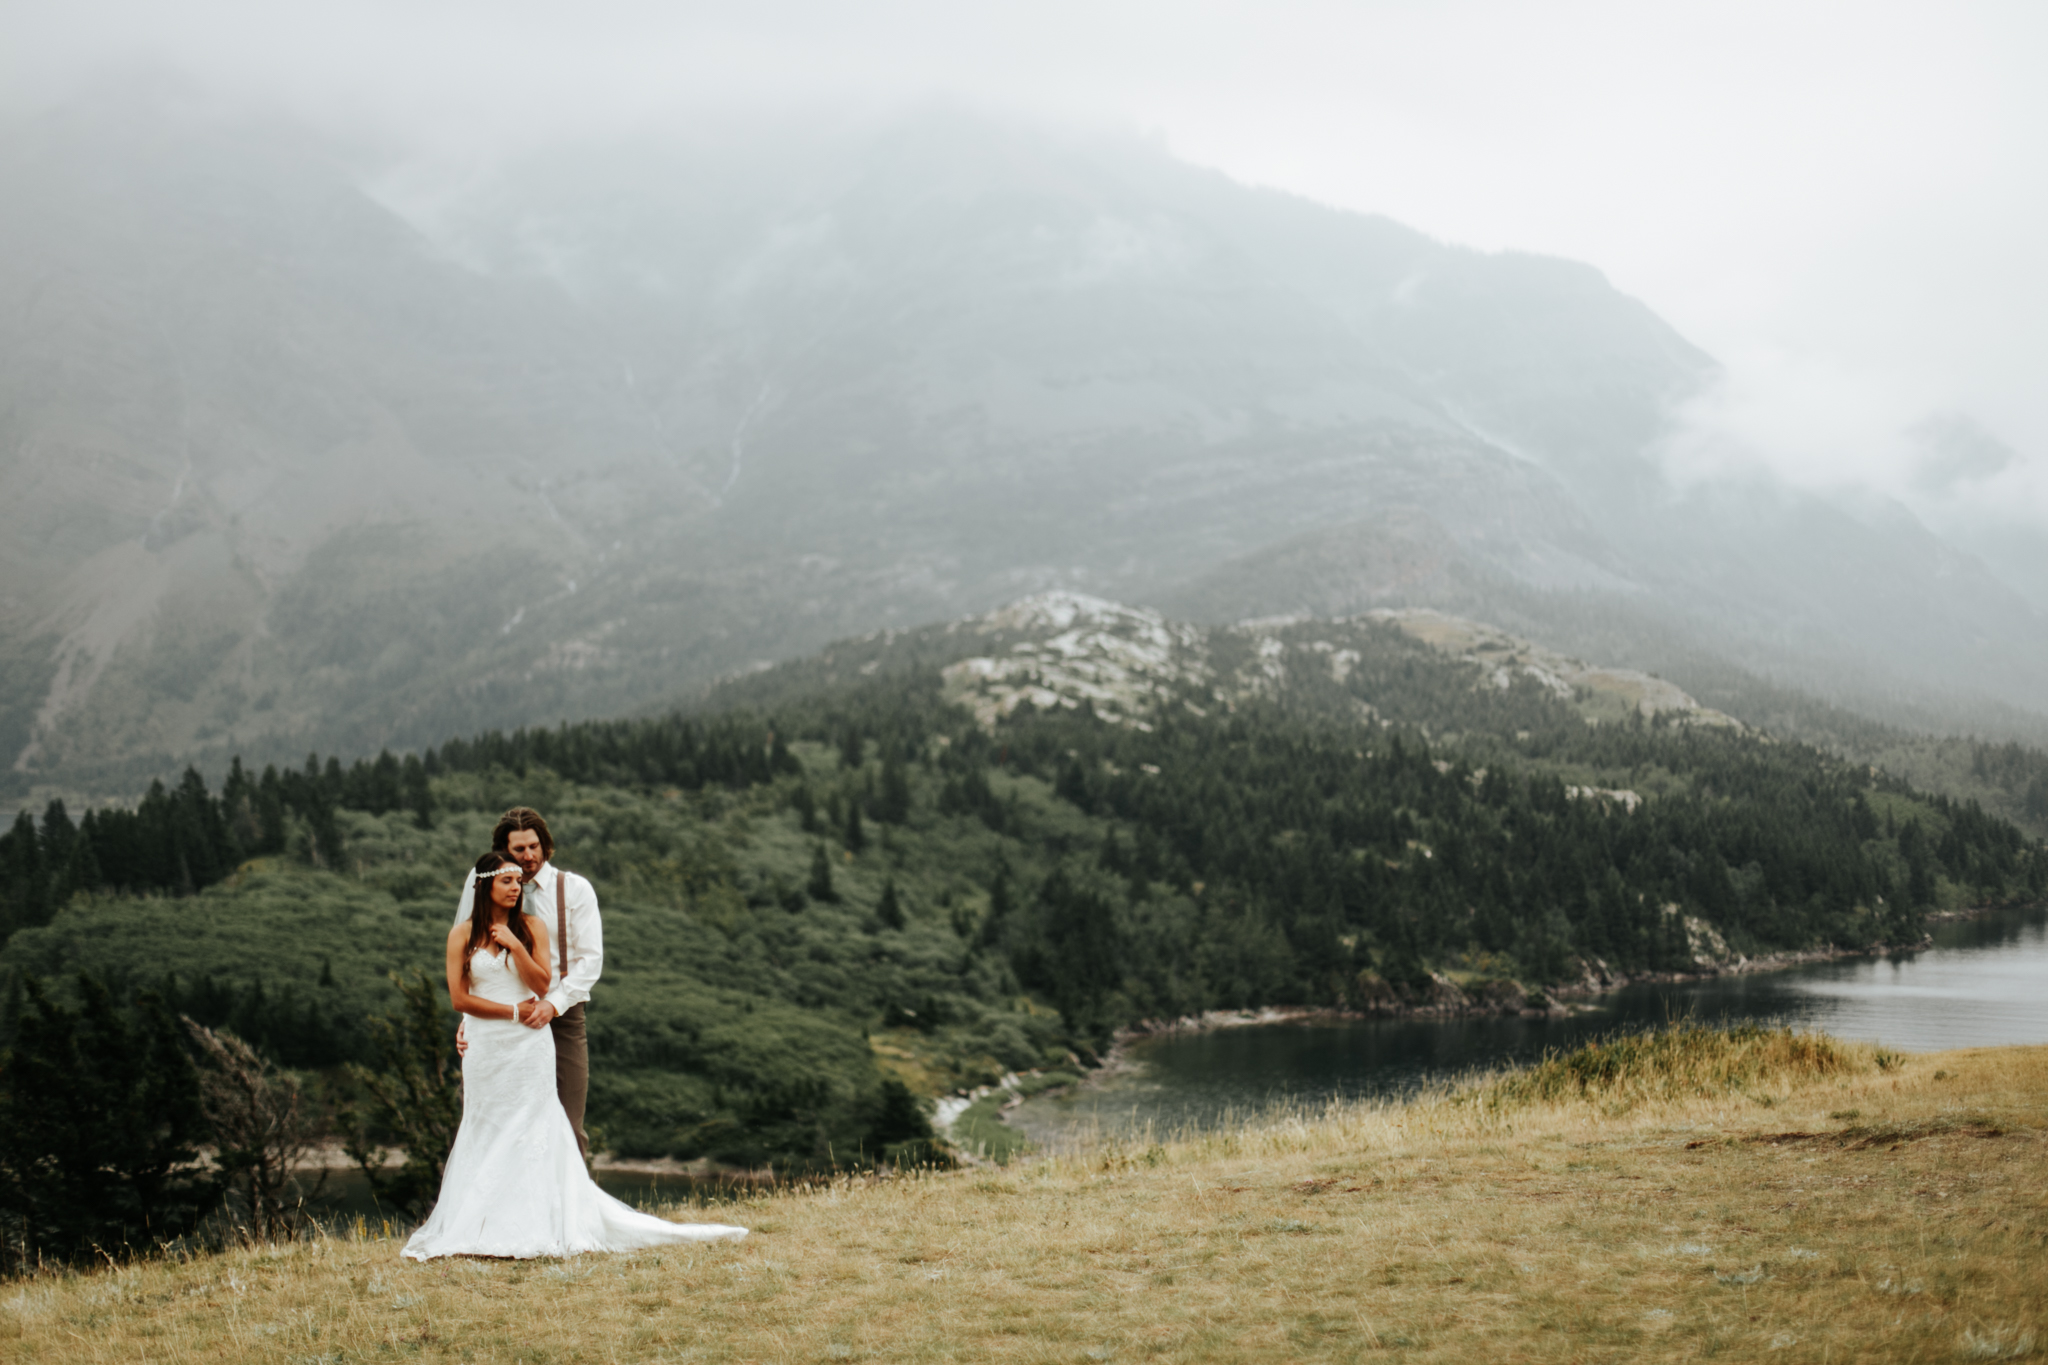 lethbridge-wedding-photographer-love-and-be-loved-photography-waterton-lakes-mountain-picture-image-photo-21.jpg